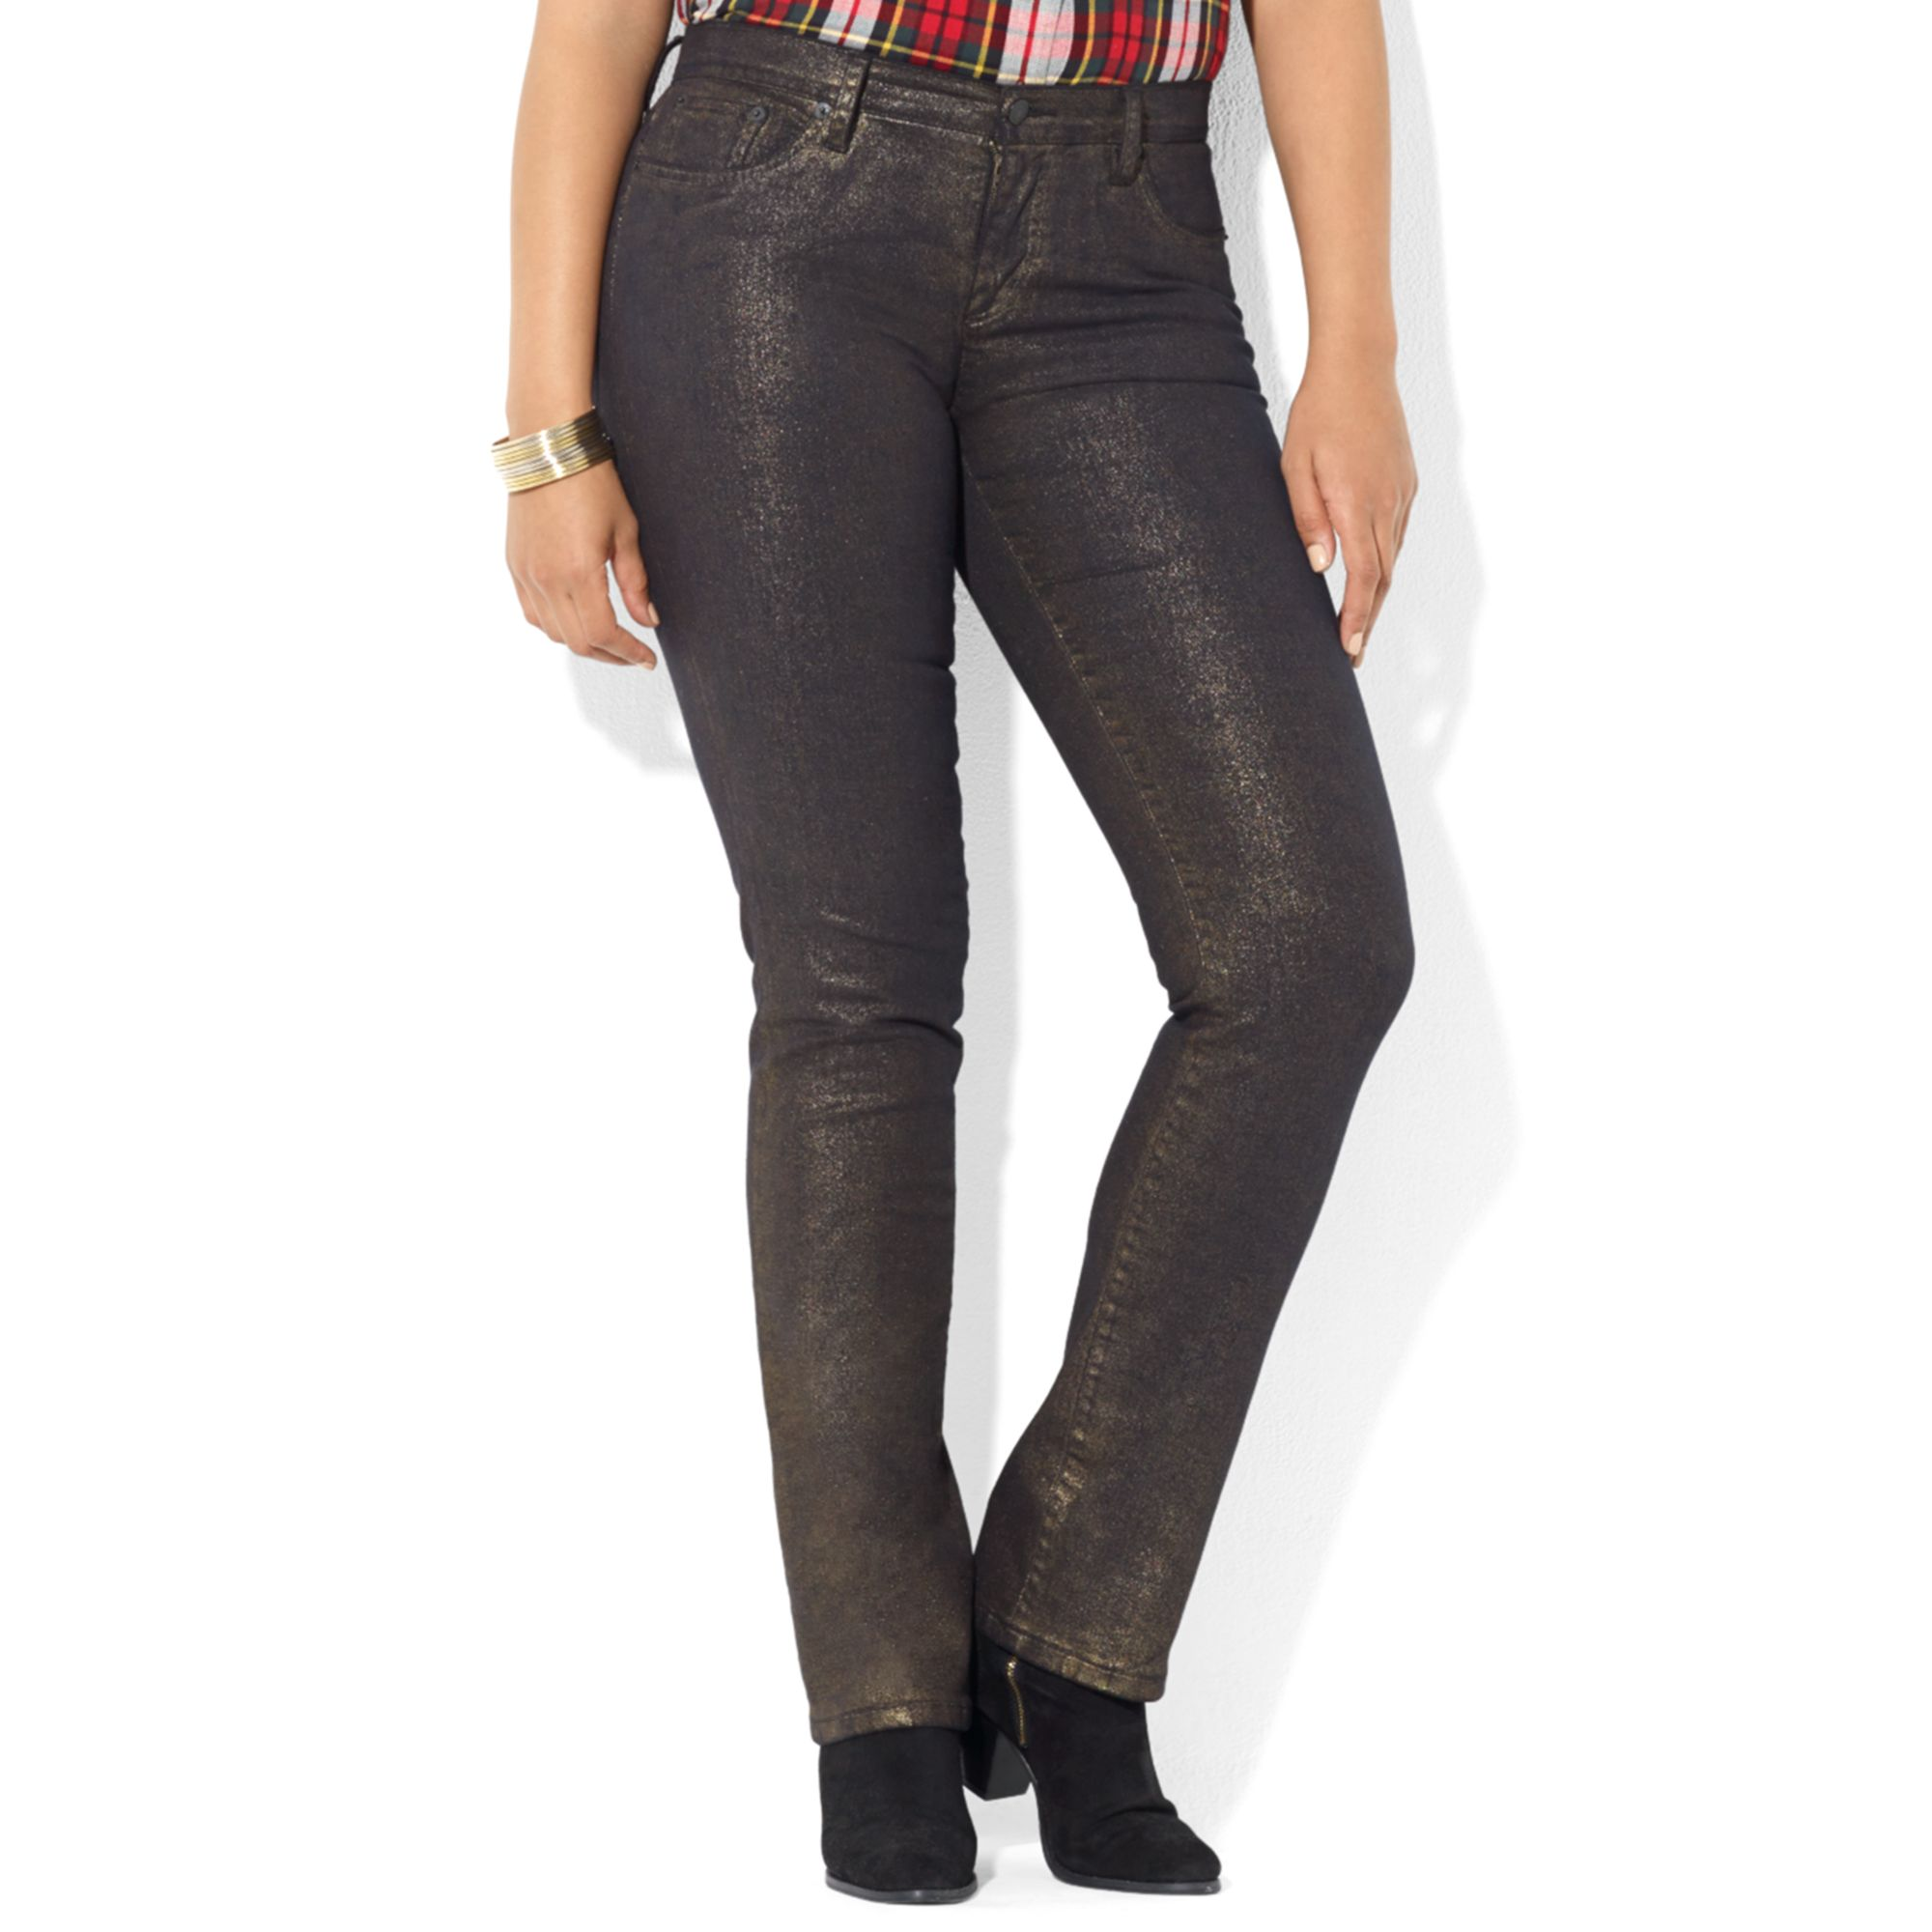 Lauren by ralph lauren Lauren Jeans Co Plus Size Jeans Metallic ...